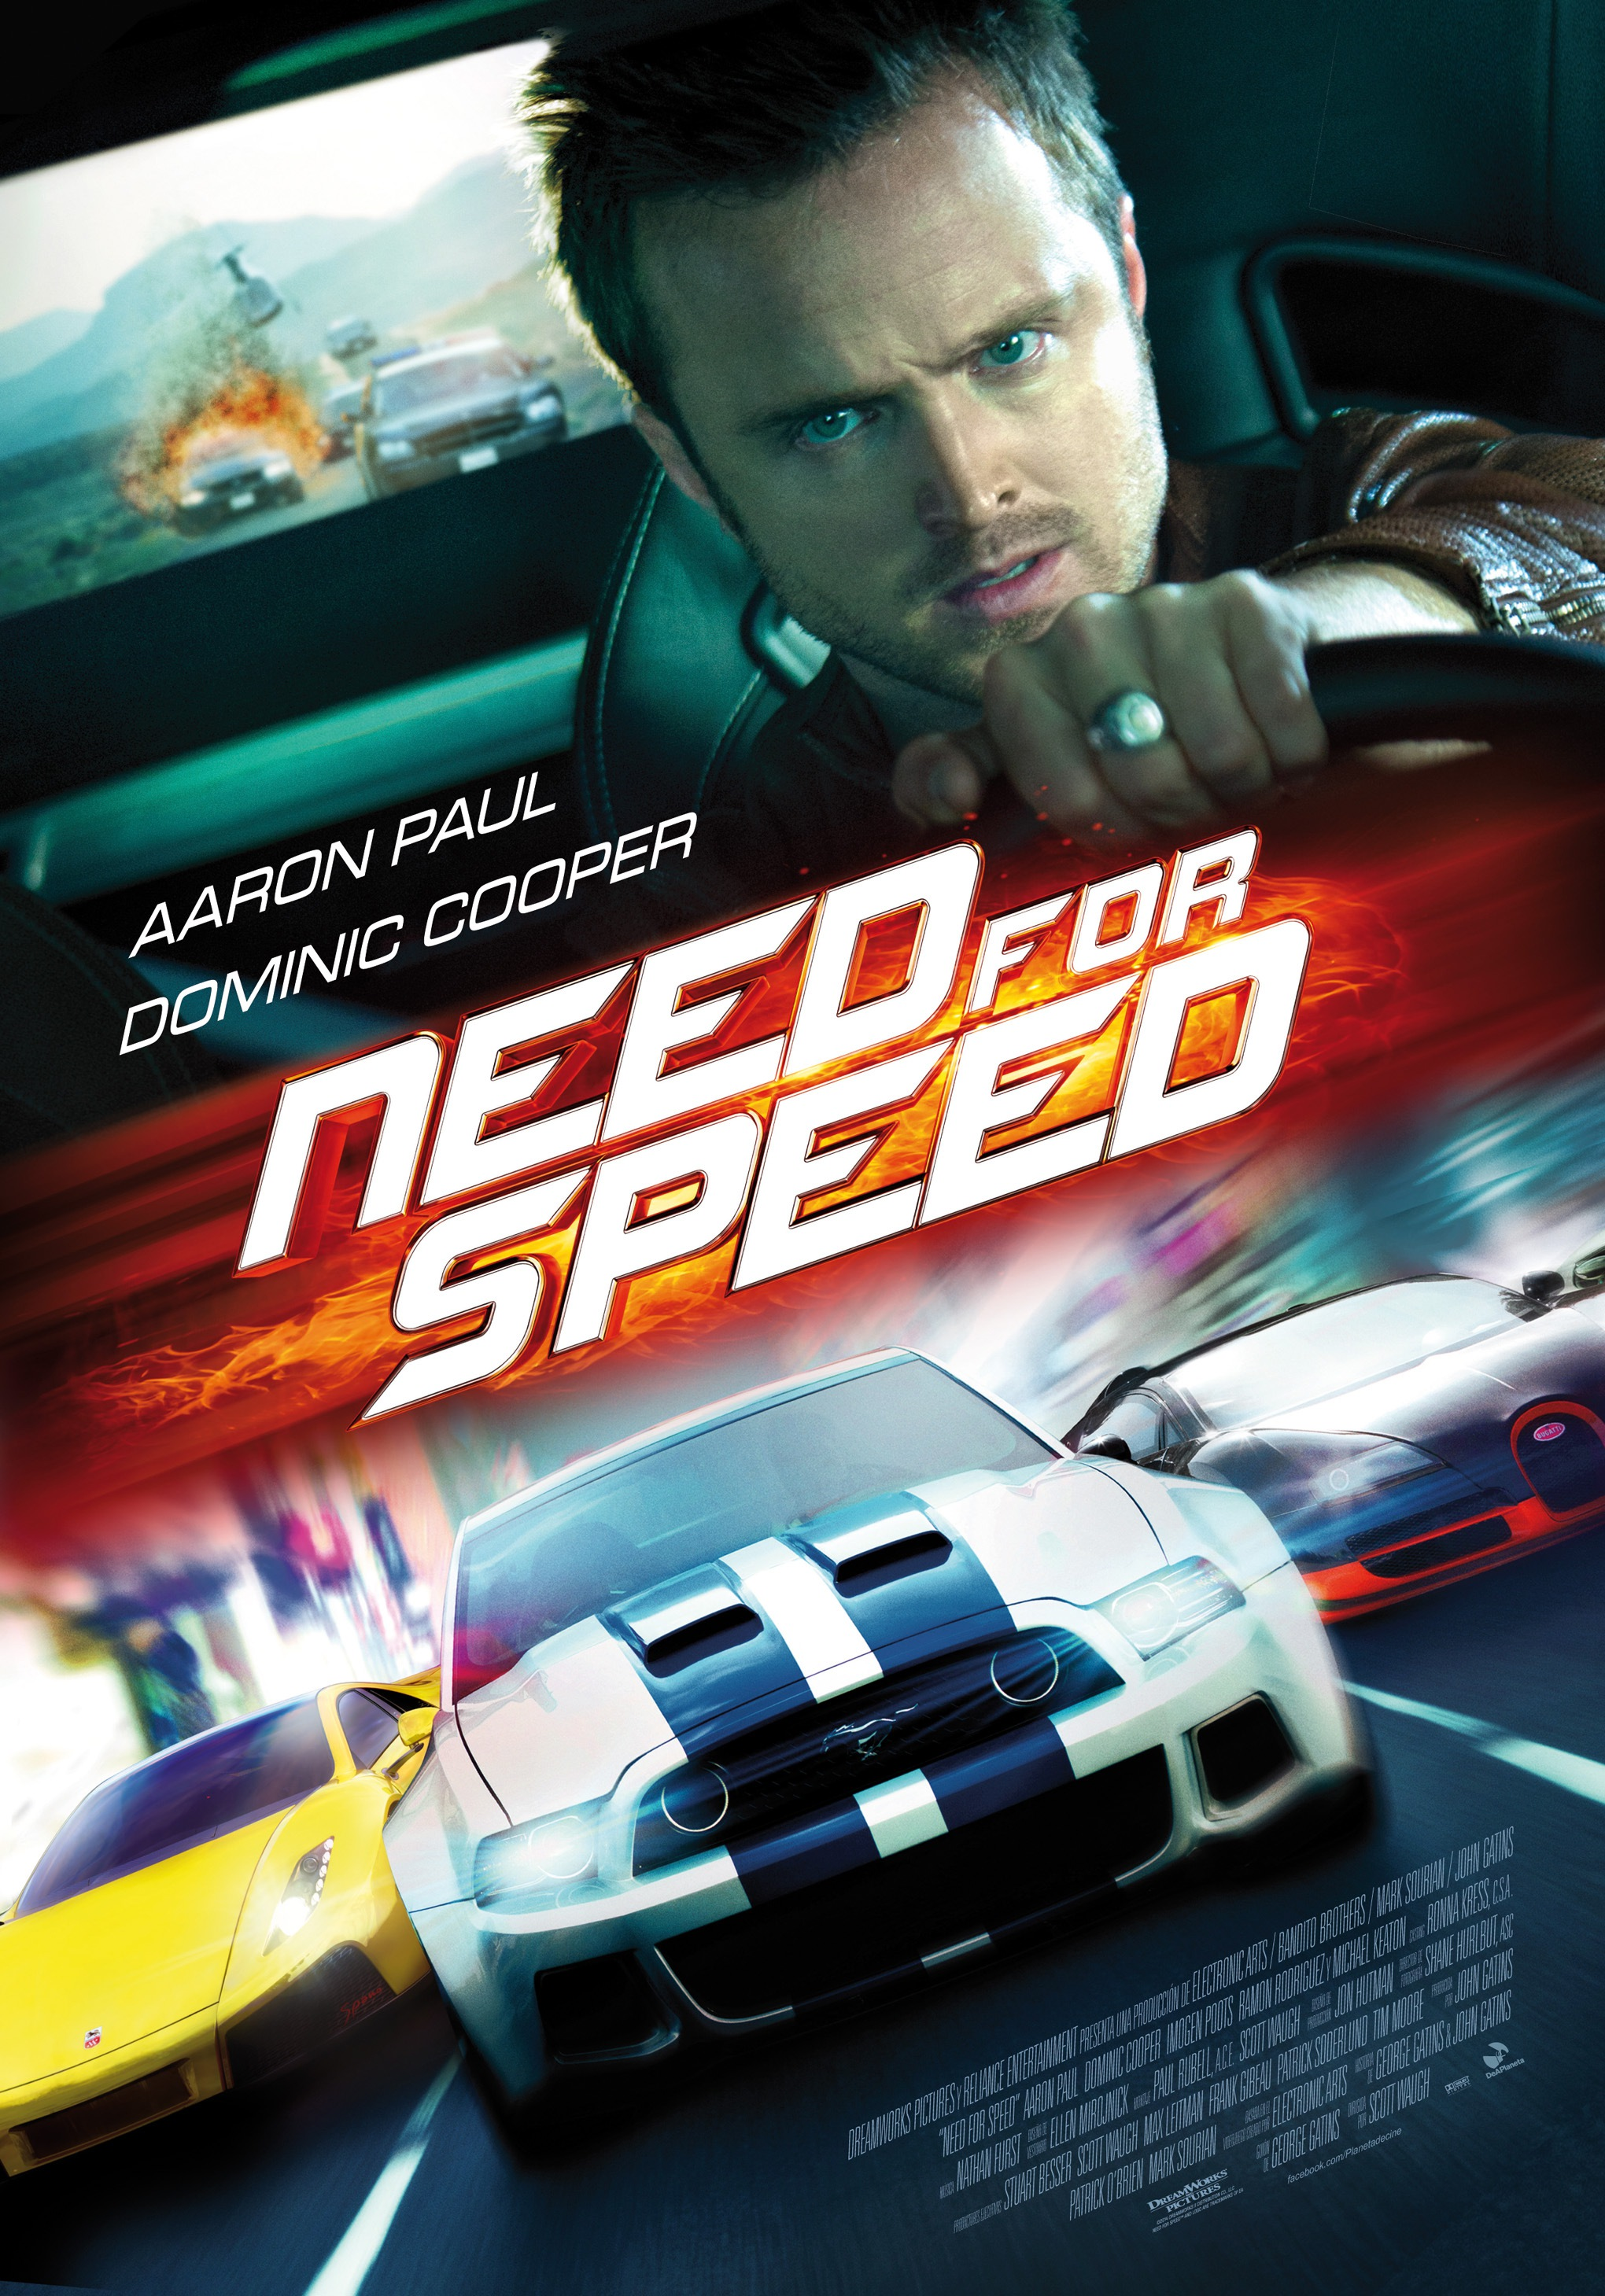 NEED FOR SPEED DIGT